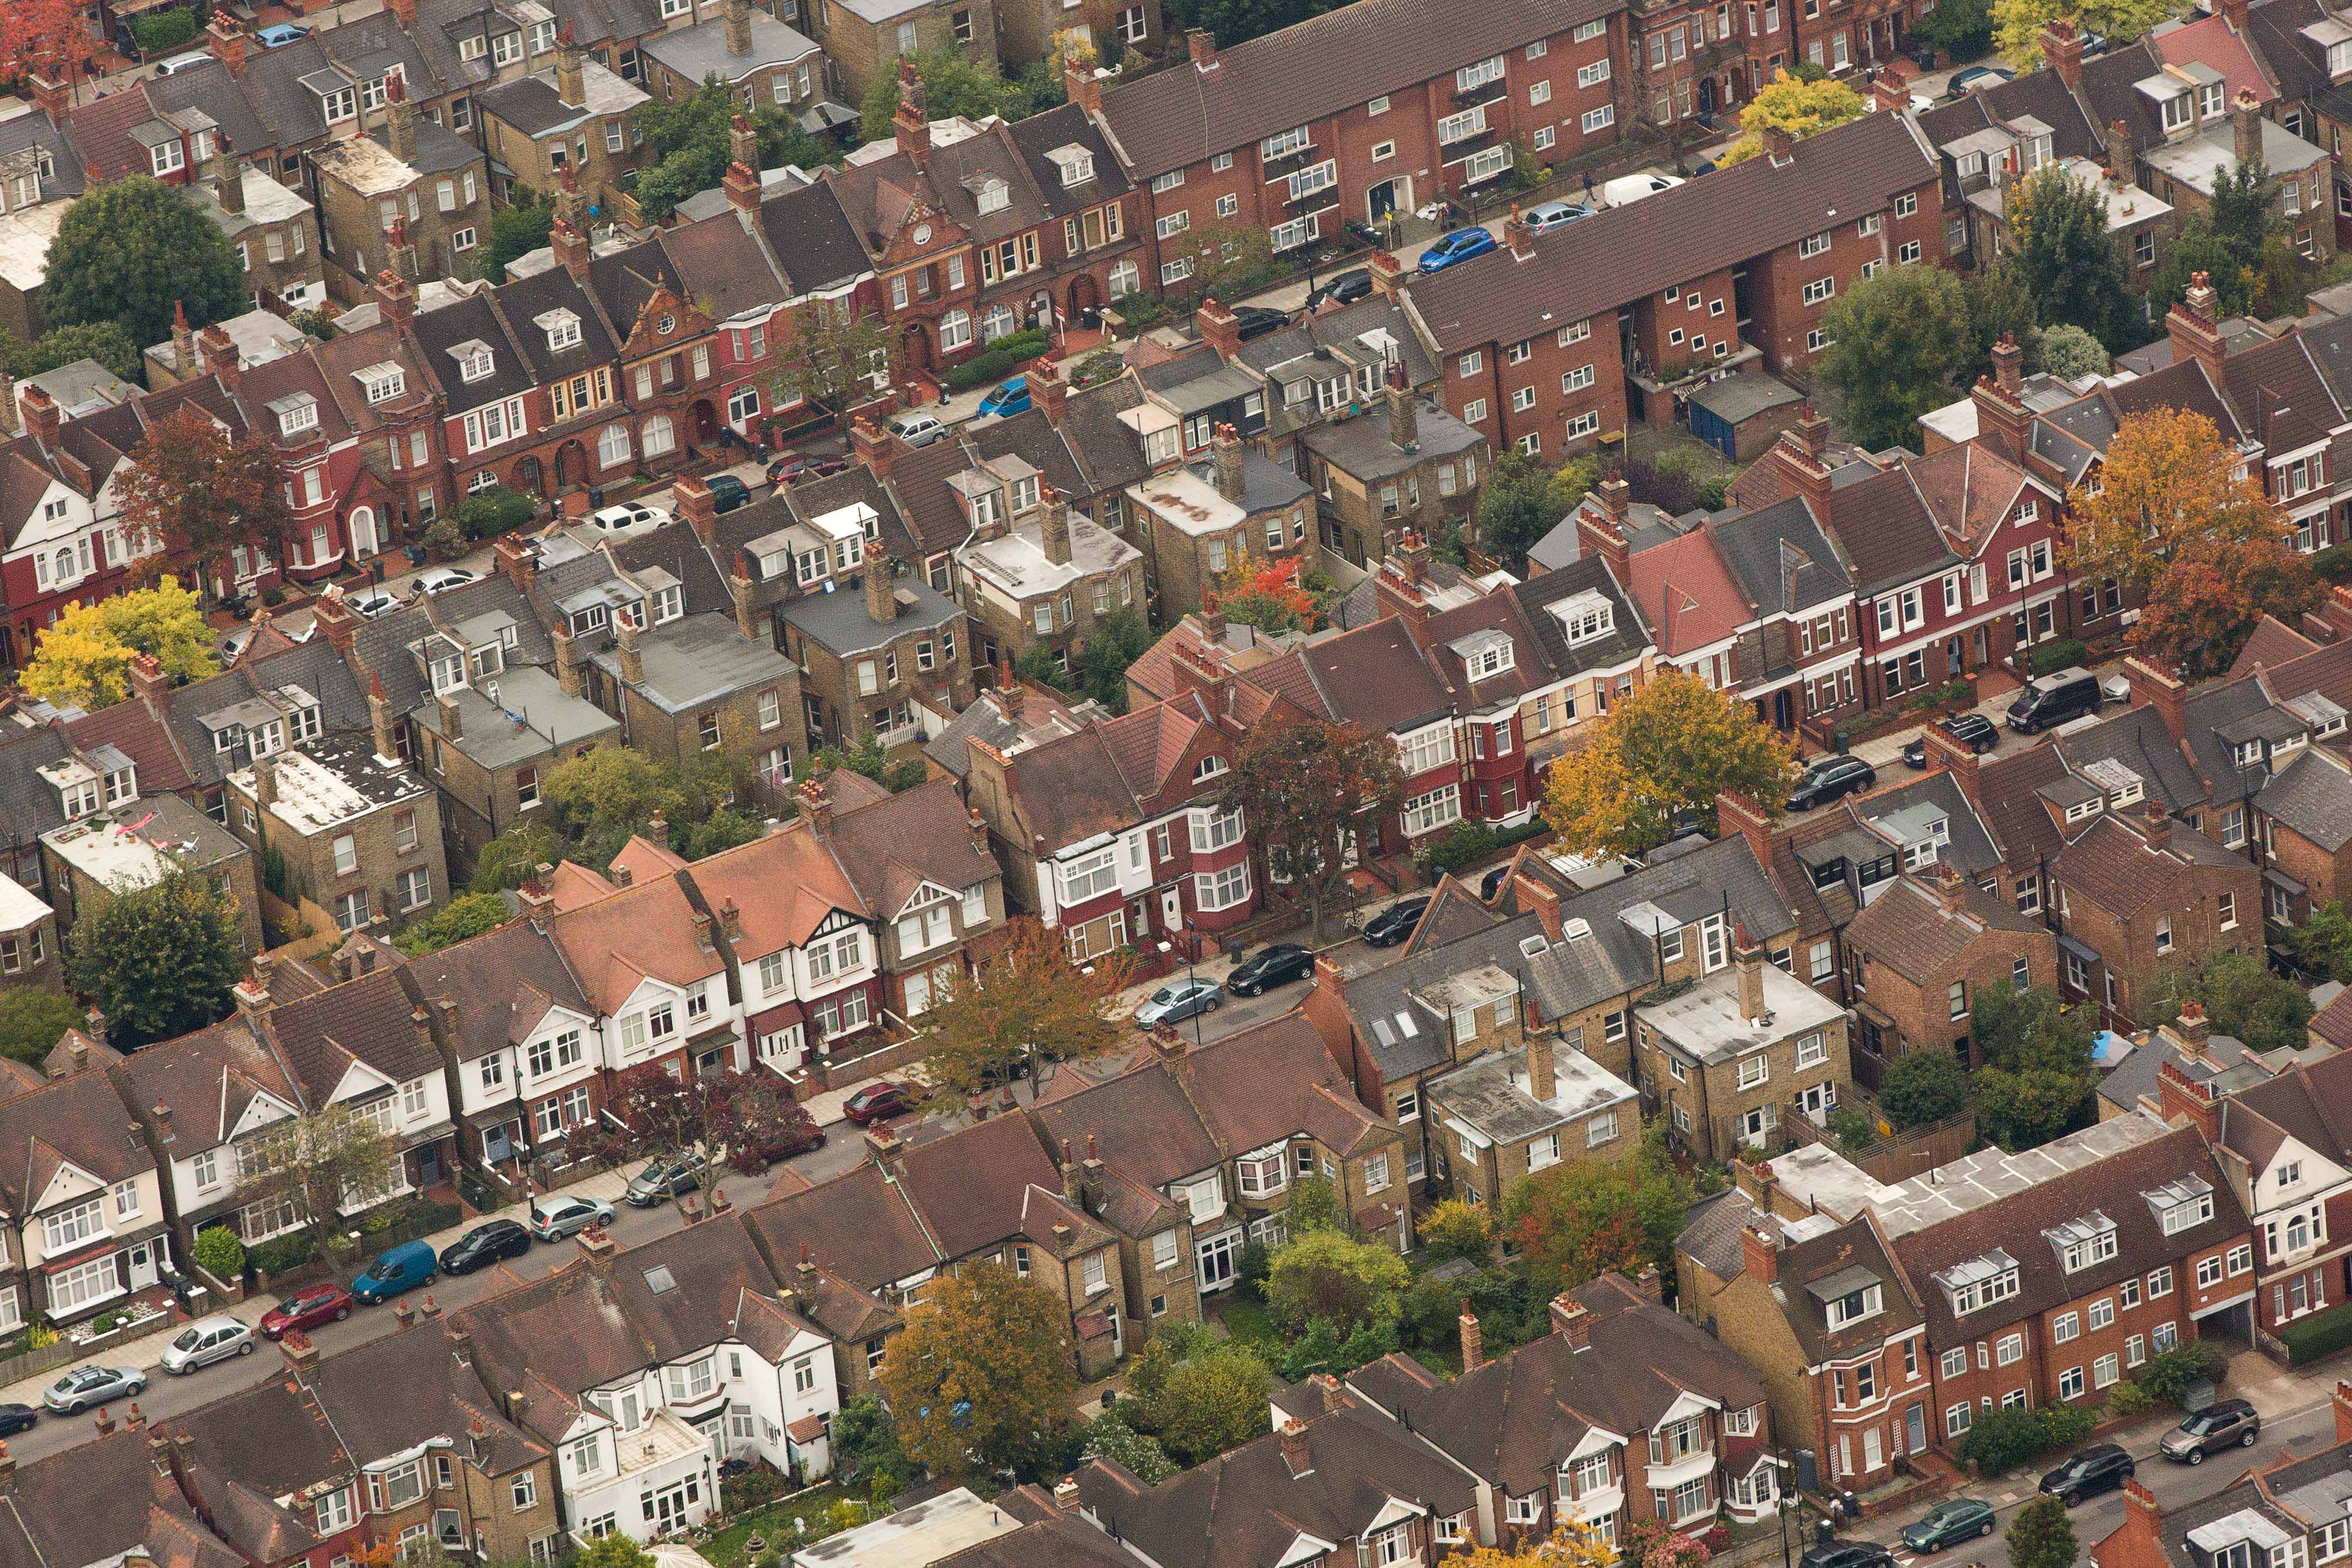 Property transactions down a third in April